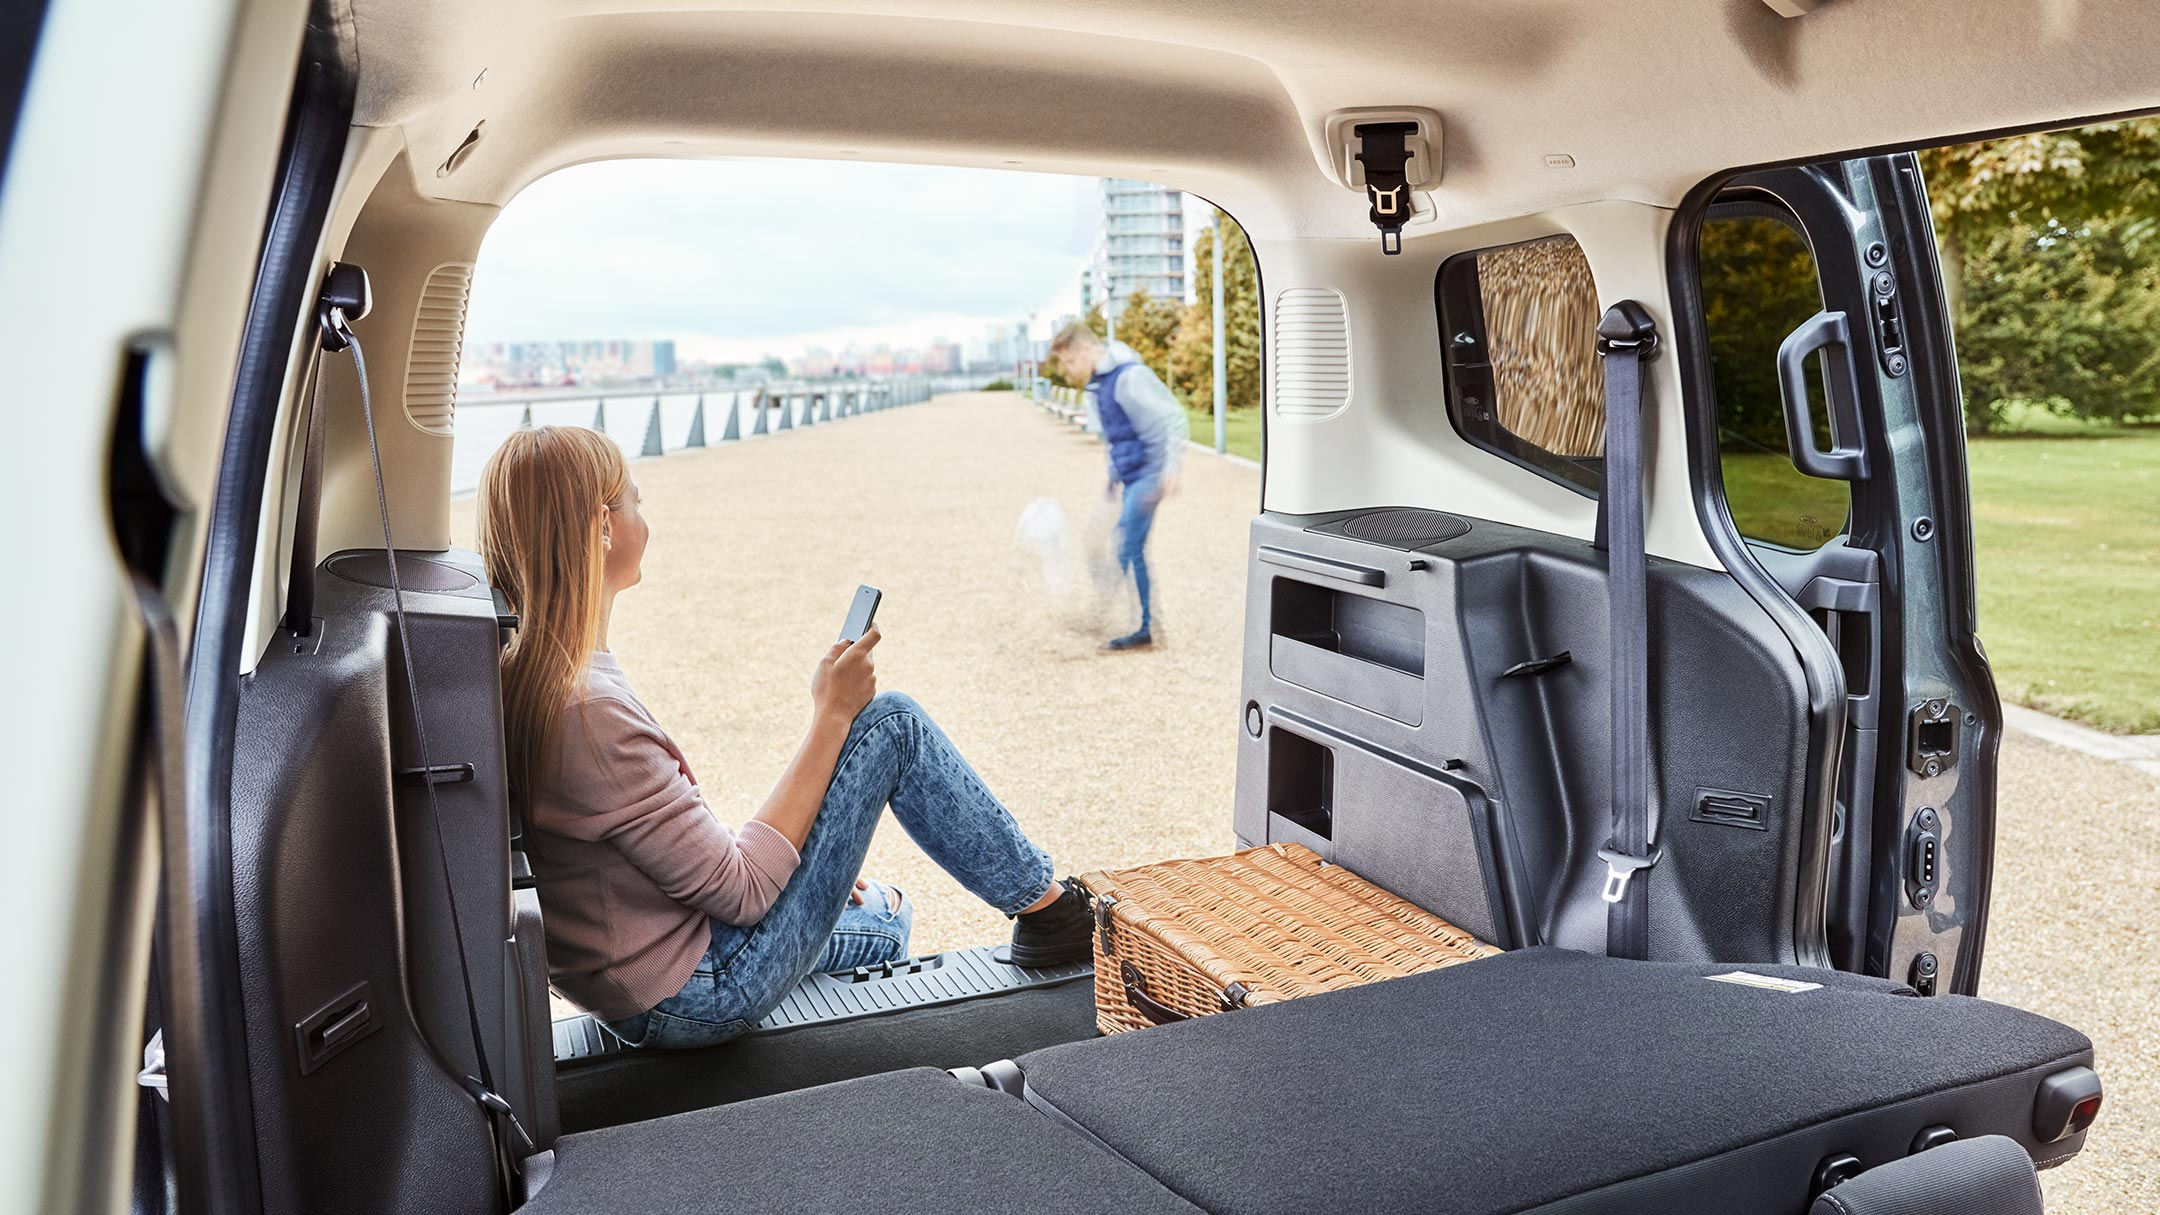 Ford Tourneo Courier interior with a person sitting on a box